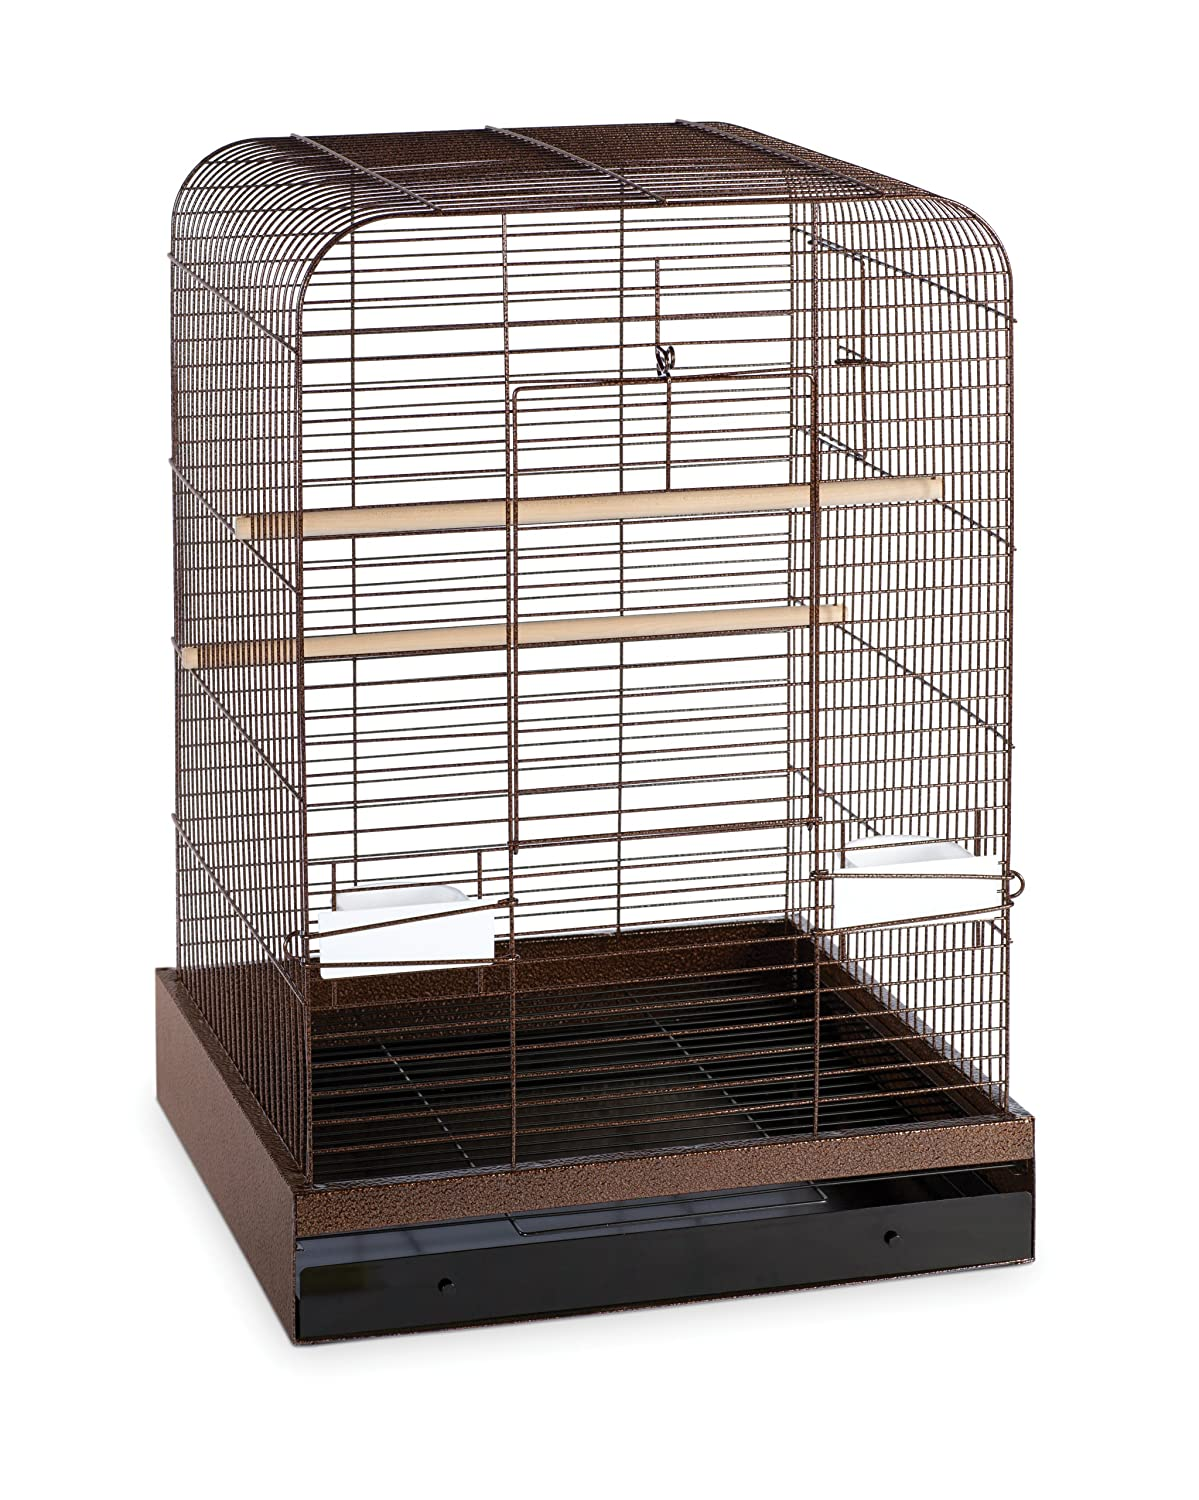 Copper Prevue Hendryx Pet Products Madison Bird Cage, Putty